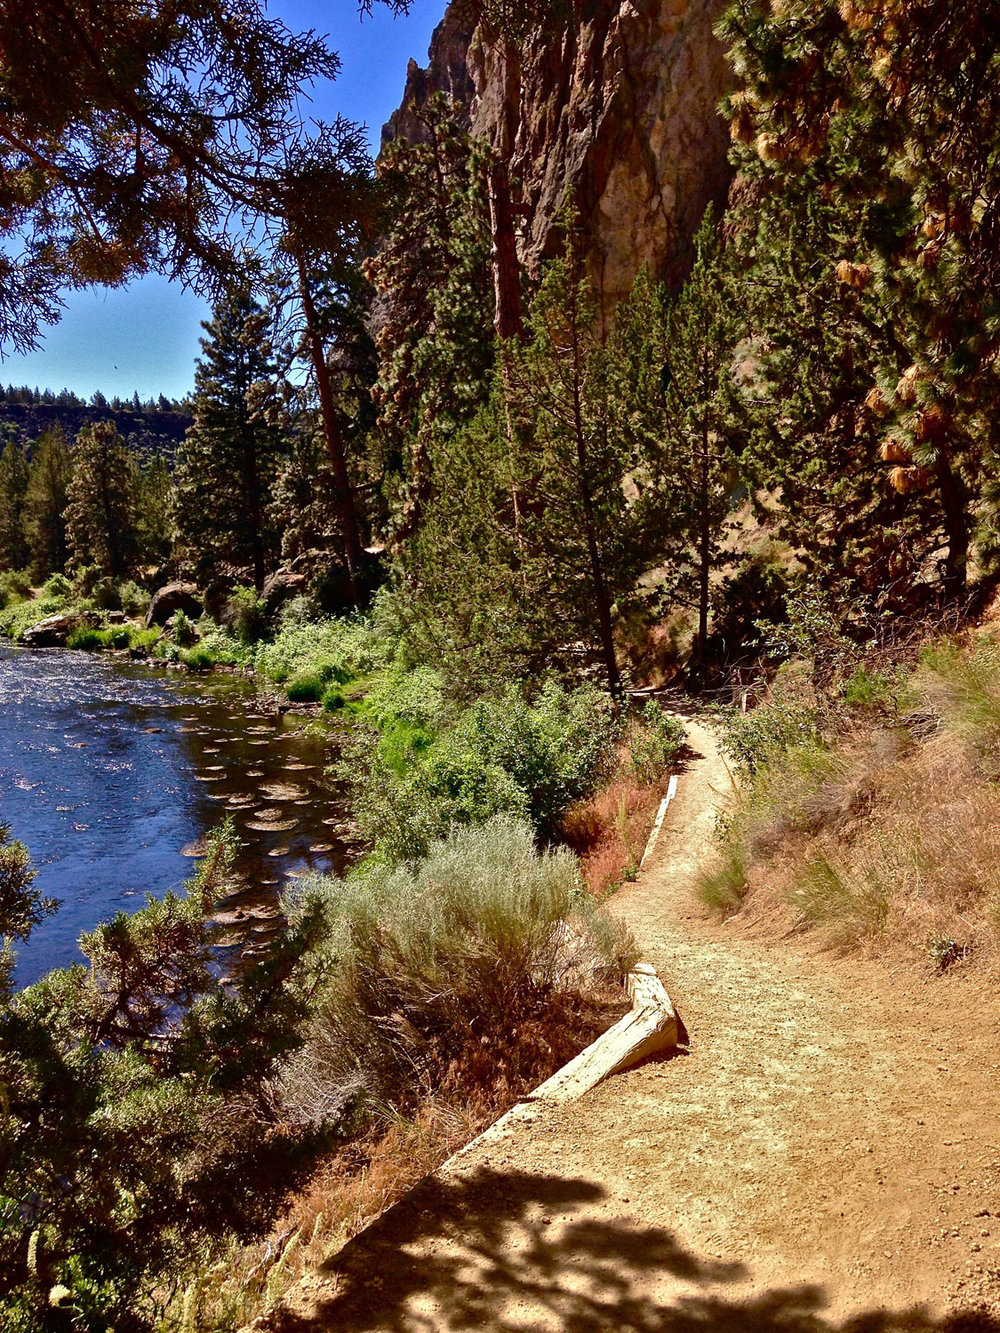 Ducks, otters, and blue heron are often spotted in the water along the River Trail at Smith Rock State Park.